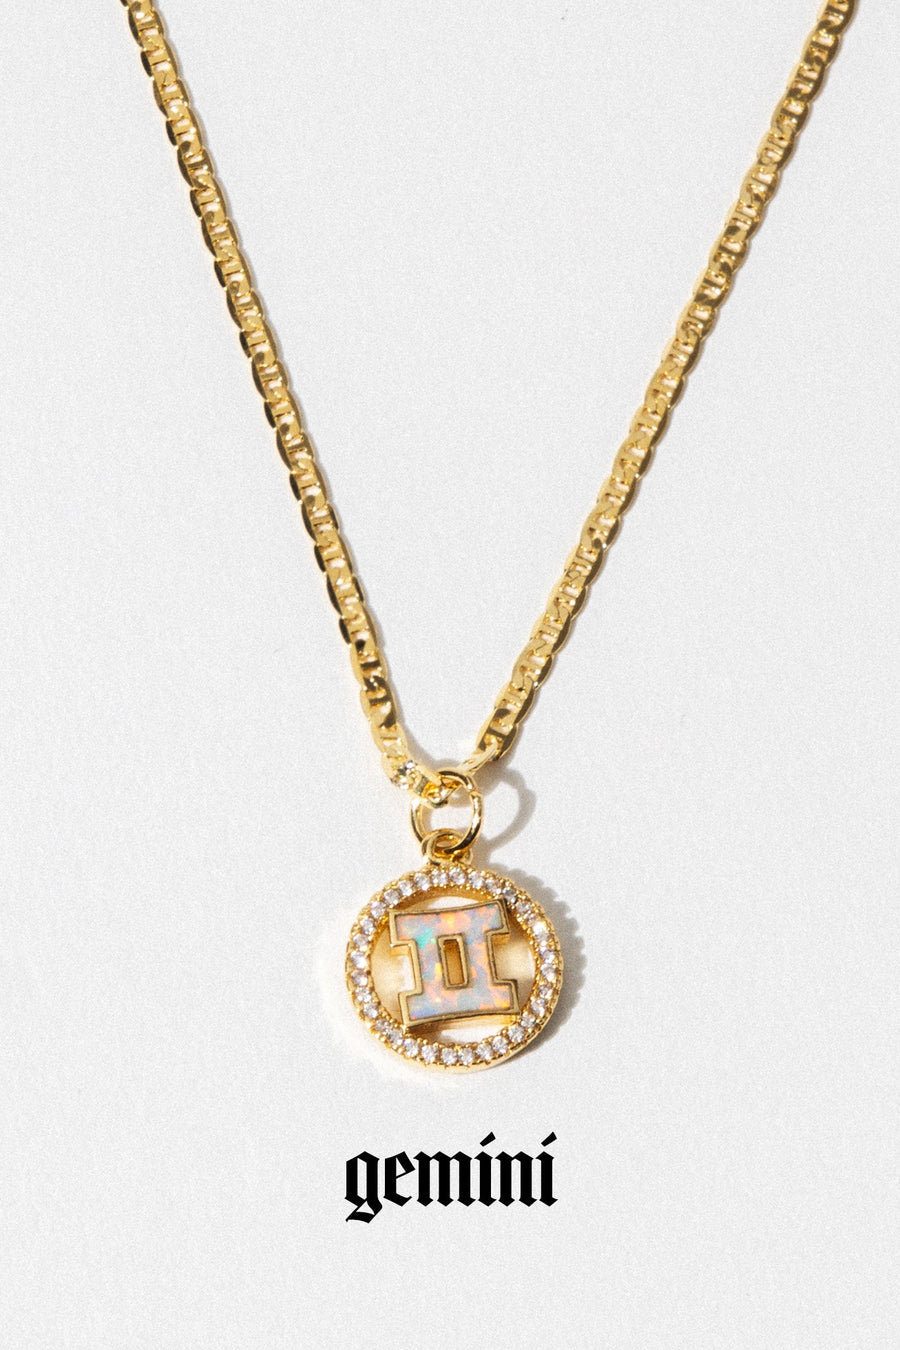 Aimvogue Jewelry Gemini / Gold / 18 Inches Opal Zodiac Necklace